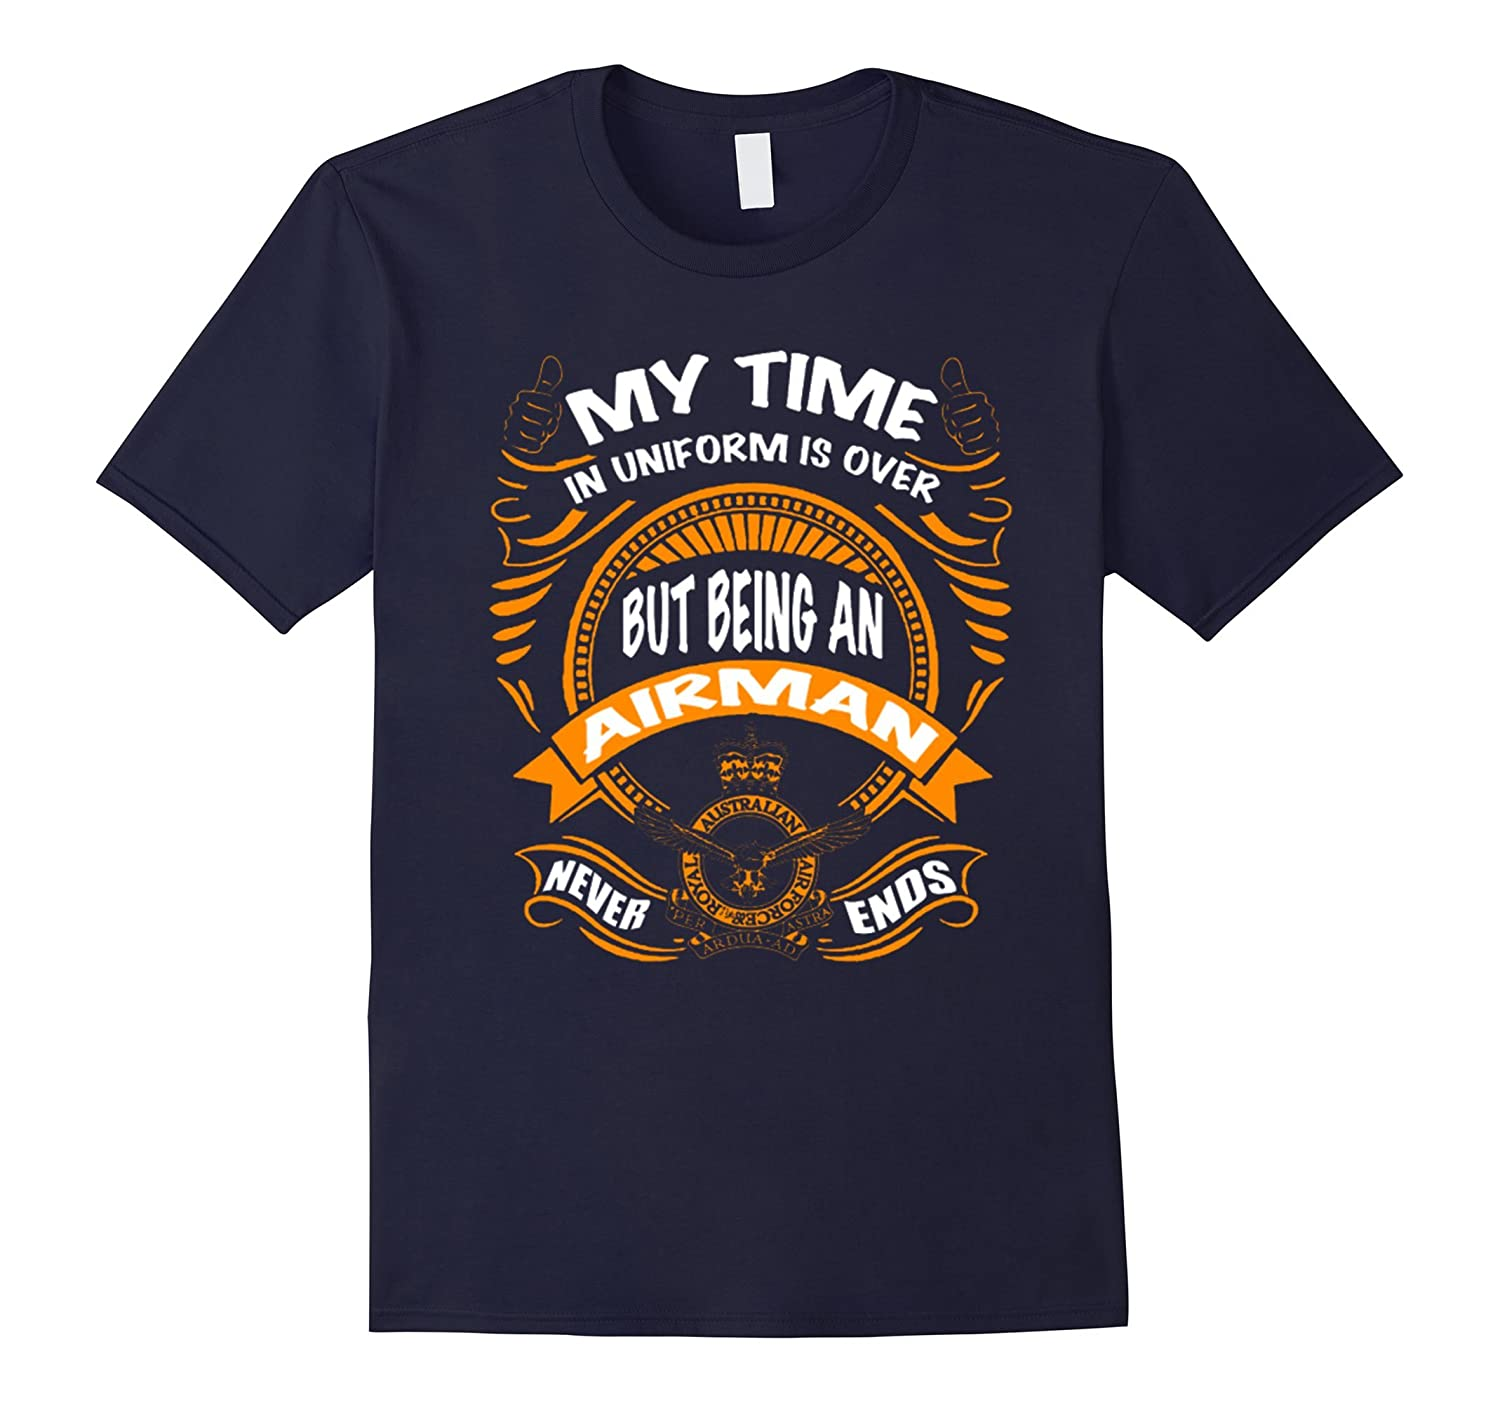 Airman - Being an air man never ends shirt-PL